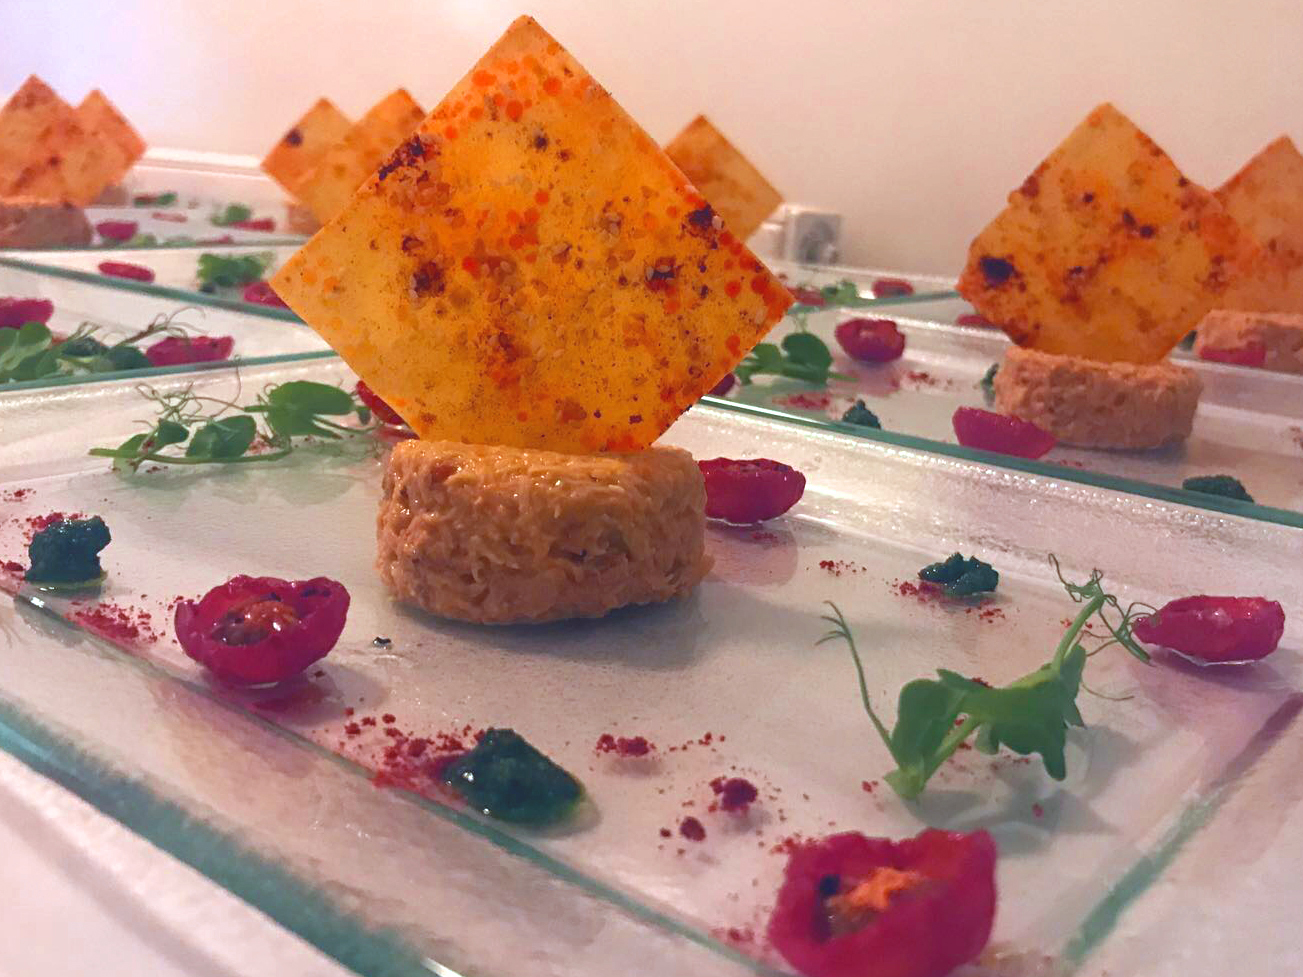 Dine Events Catering | Whitby Crab in a tomato aioli with smoked paprika wonton, marinated pomodorino tomatoes